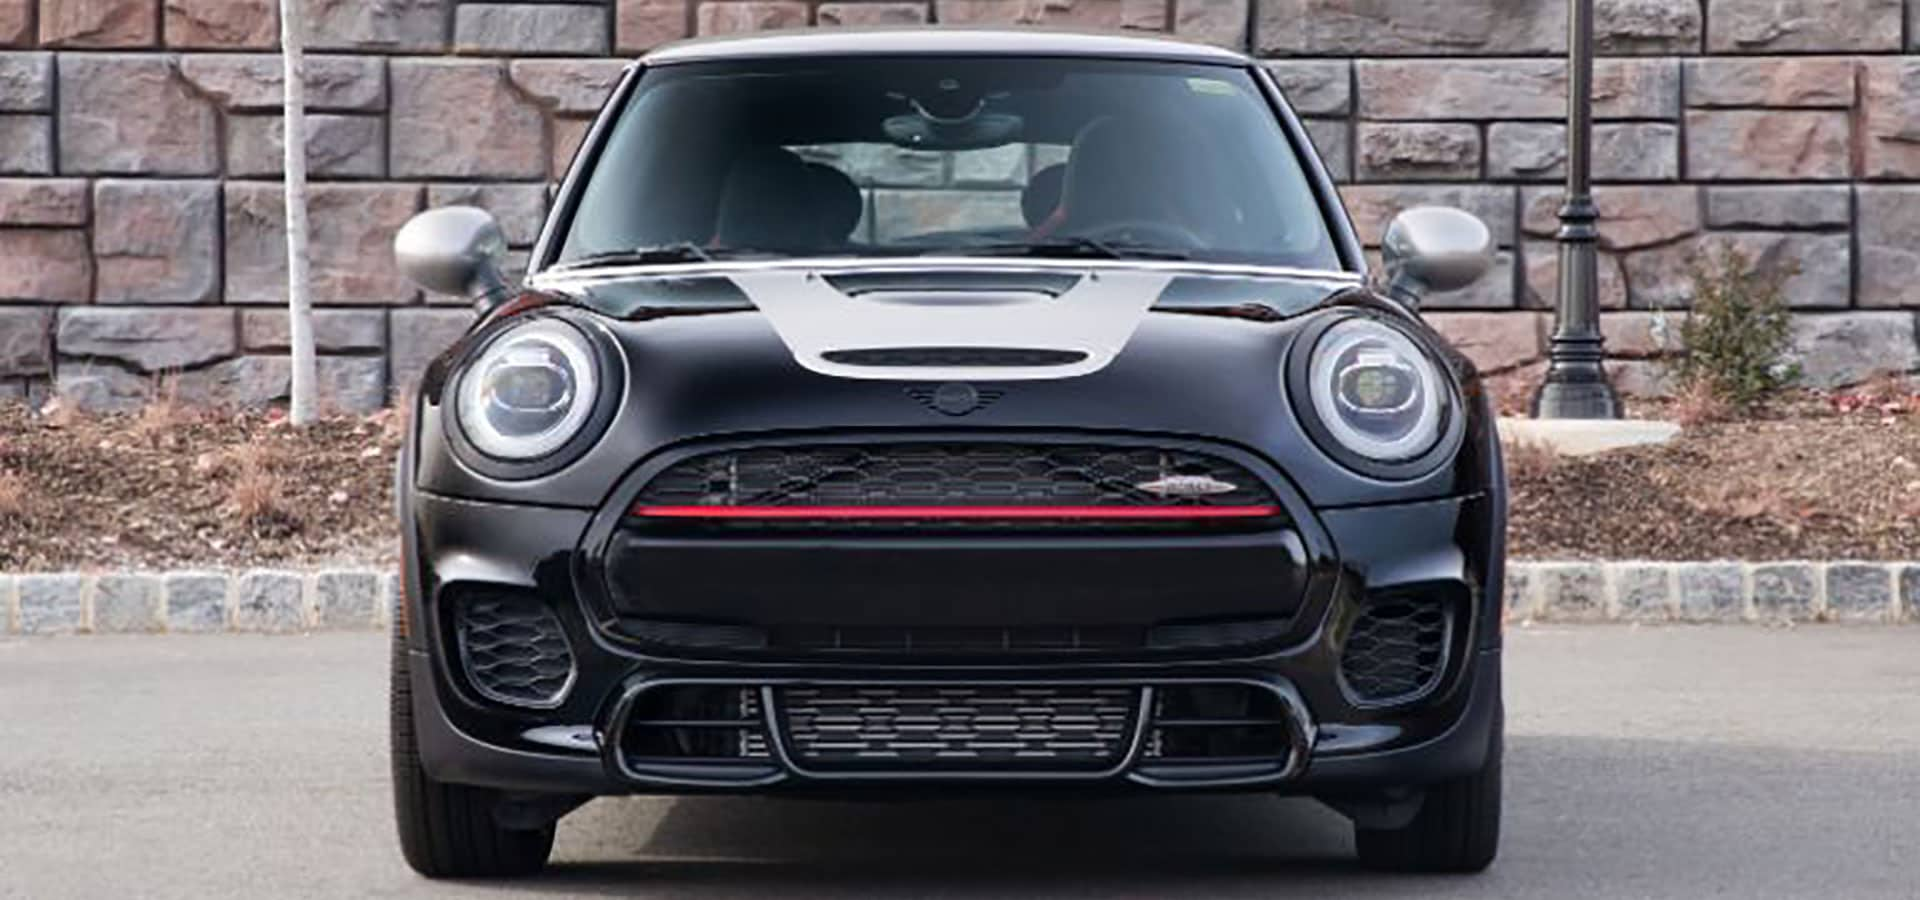 JCW Knights Edition